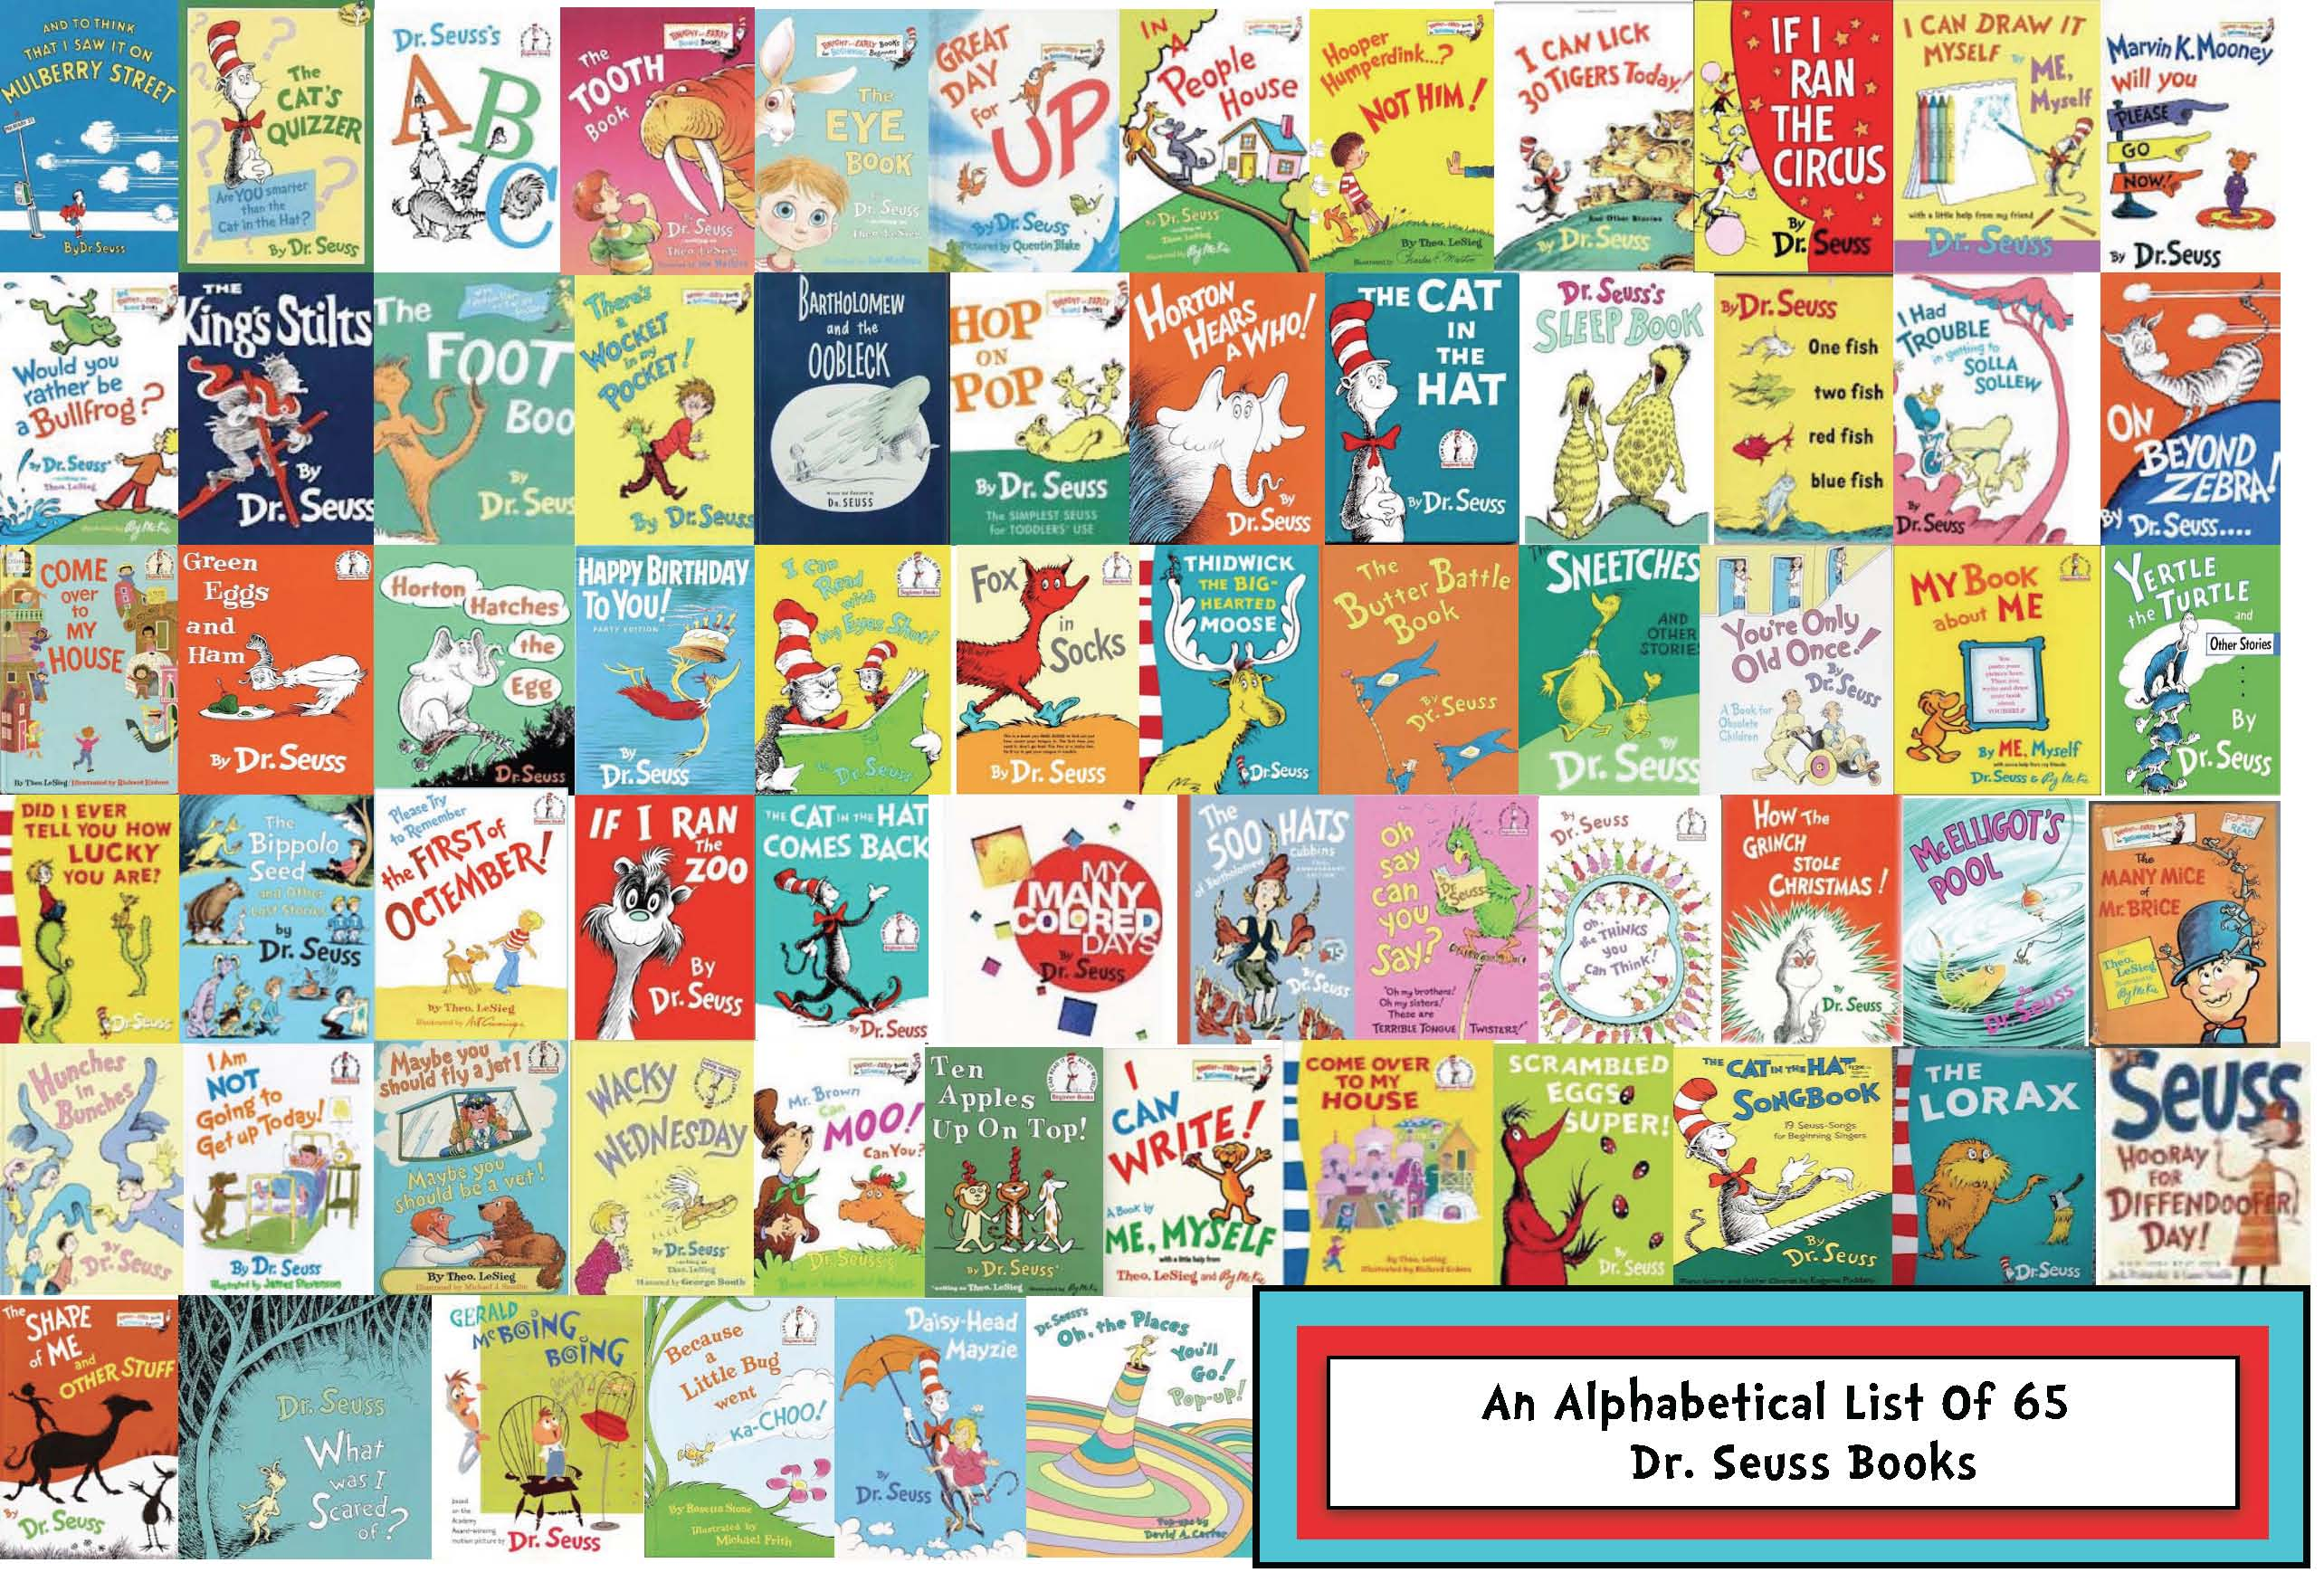 a list of Dr Seuss books, bibliography of books by Seuss, synopsis of seuss books, a synopsis of 79 Seuss stories, an alphabetical list of 65 books by seuss, Seuss book what pet should i get, how many books did seuss write